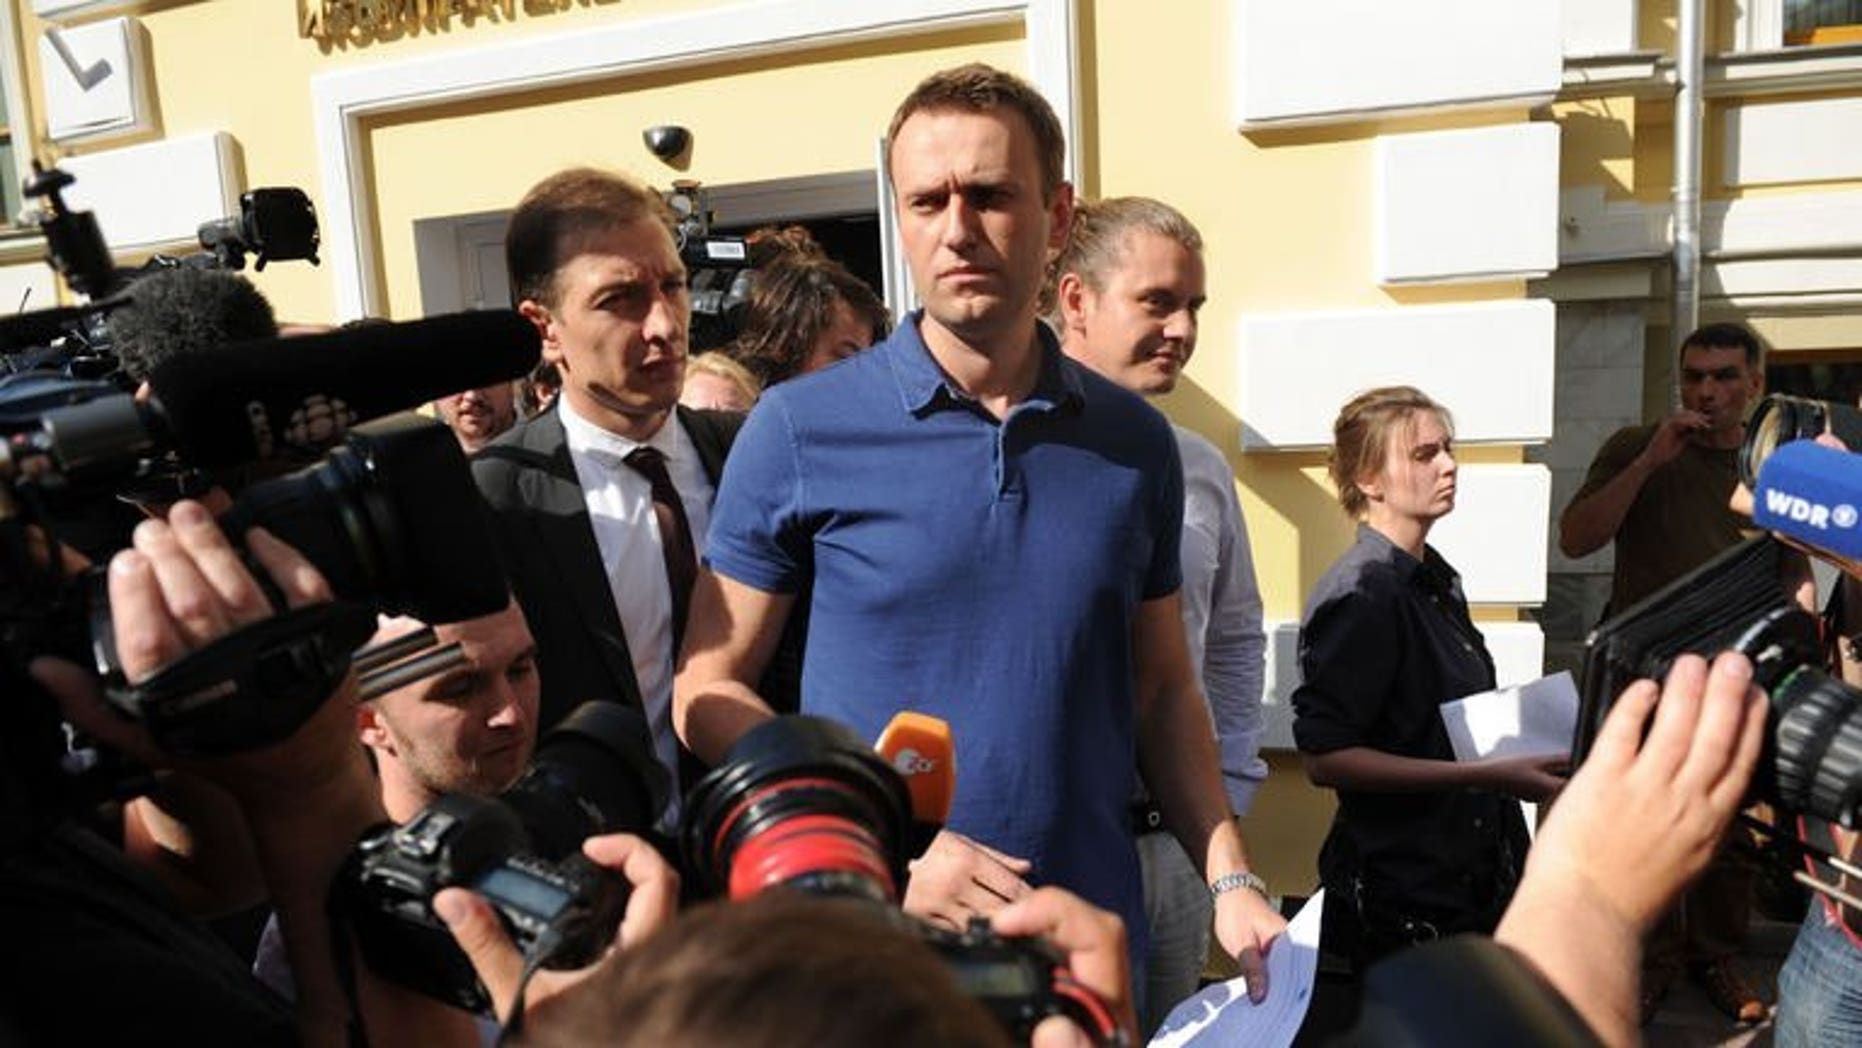 Russia's top opposition figure Alexei Navalny addresses journalists and supporters after visiting the city's election commission office to submit documents to get registered as a mayoral election candidate in Moscow July 10, 2013. Moscow authorities on Wednesday accepted Navalny's candidacy to run in mayoral polls, a day before a verdict is due in his trial on fraud charges.